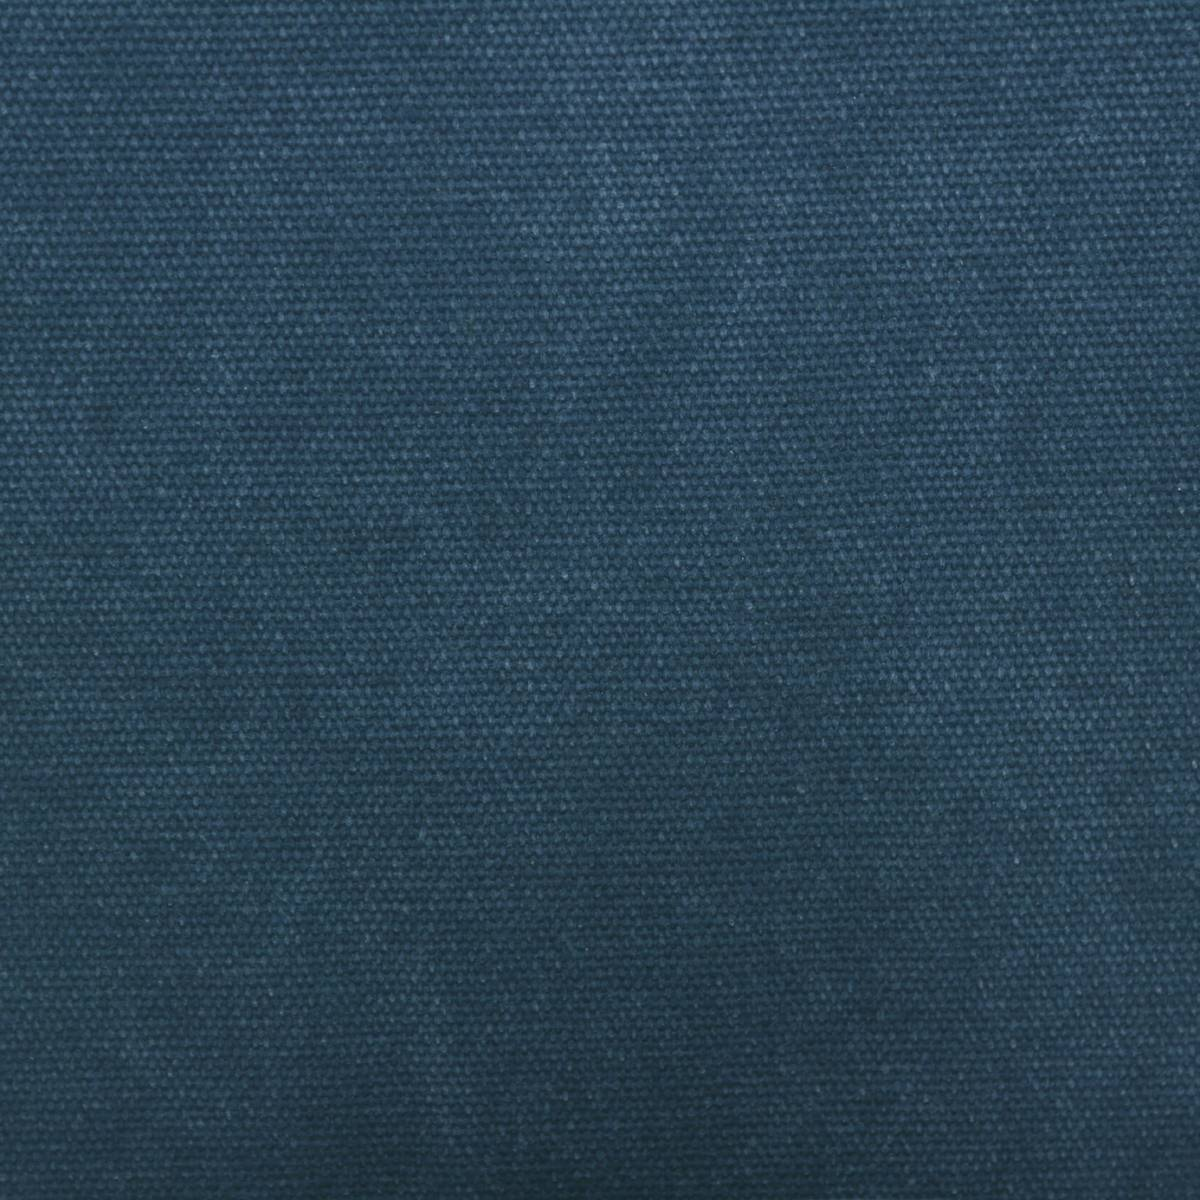 Canvas fabric navy fdg2445 44 designers guild canvas for Canvas fabric